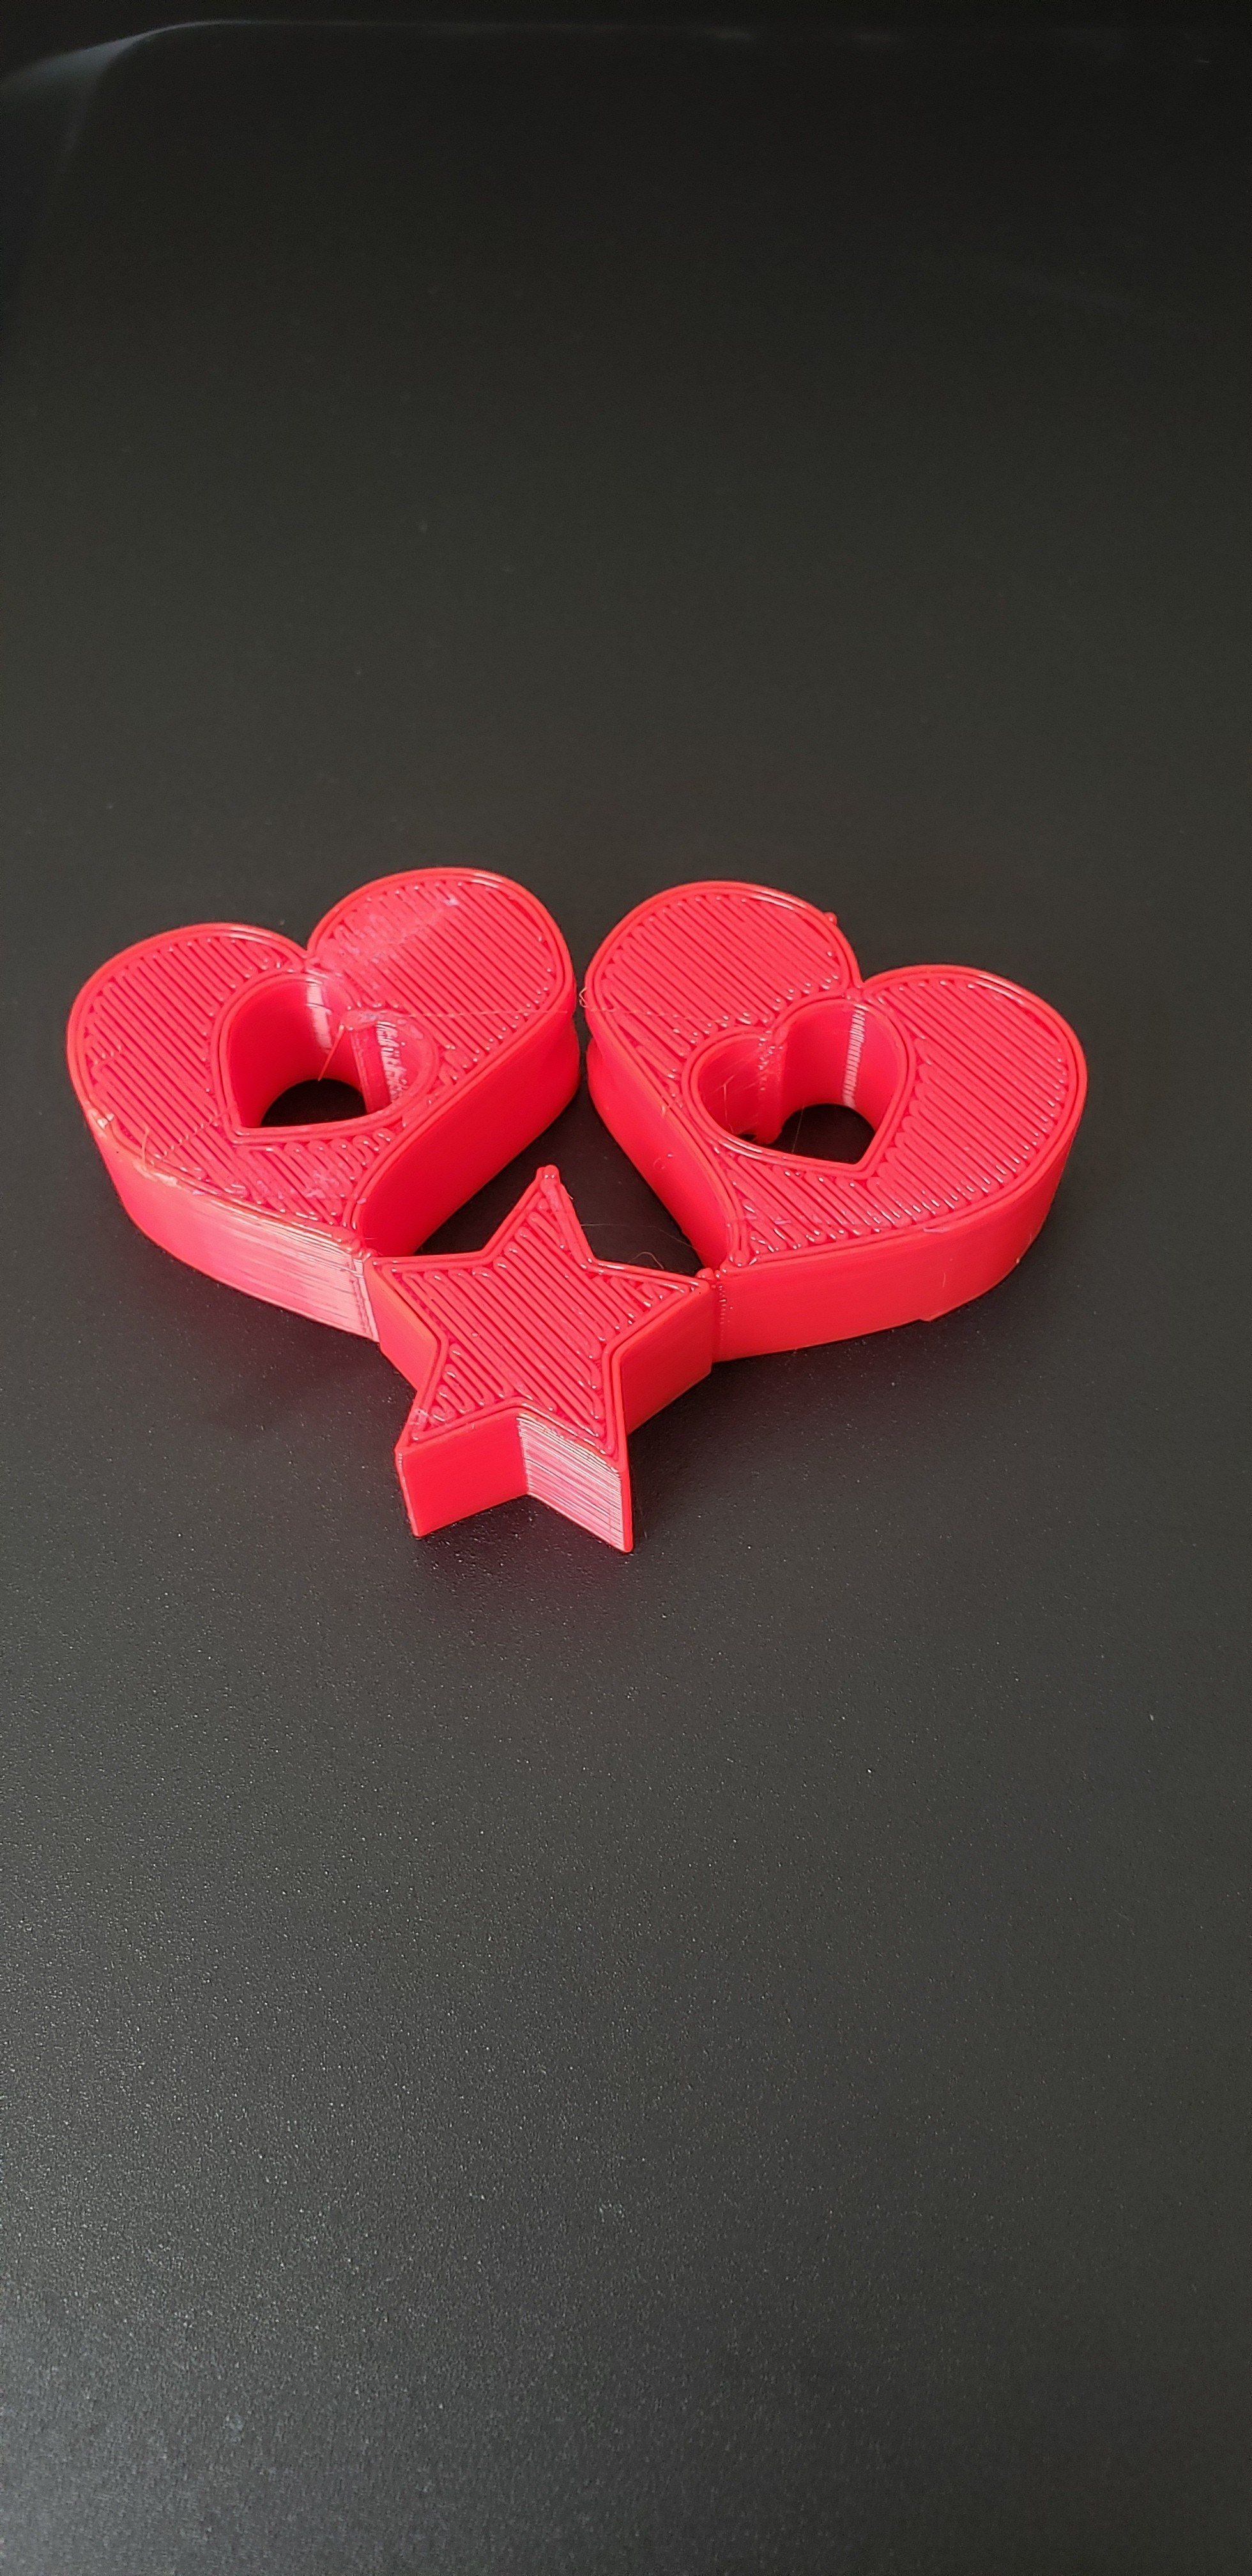 heart2 (2).jpg Download free STL file 2 Hearts and a star light pull • Model to 3D print, ED2014